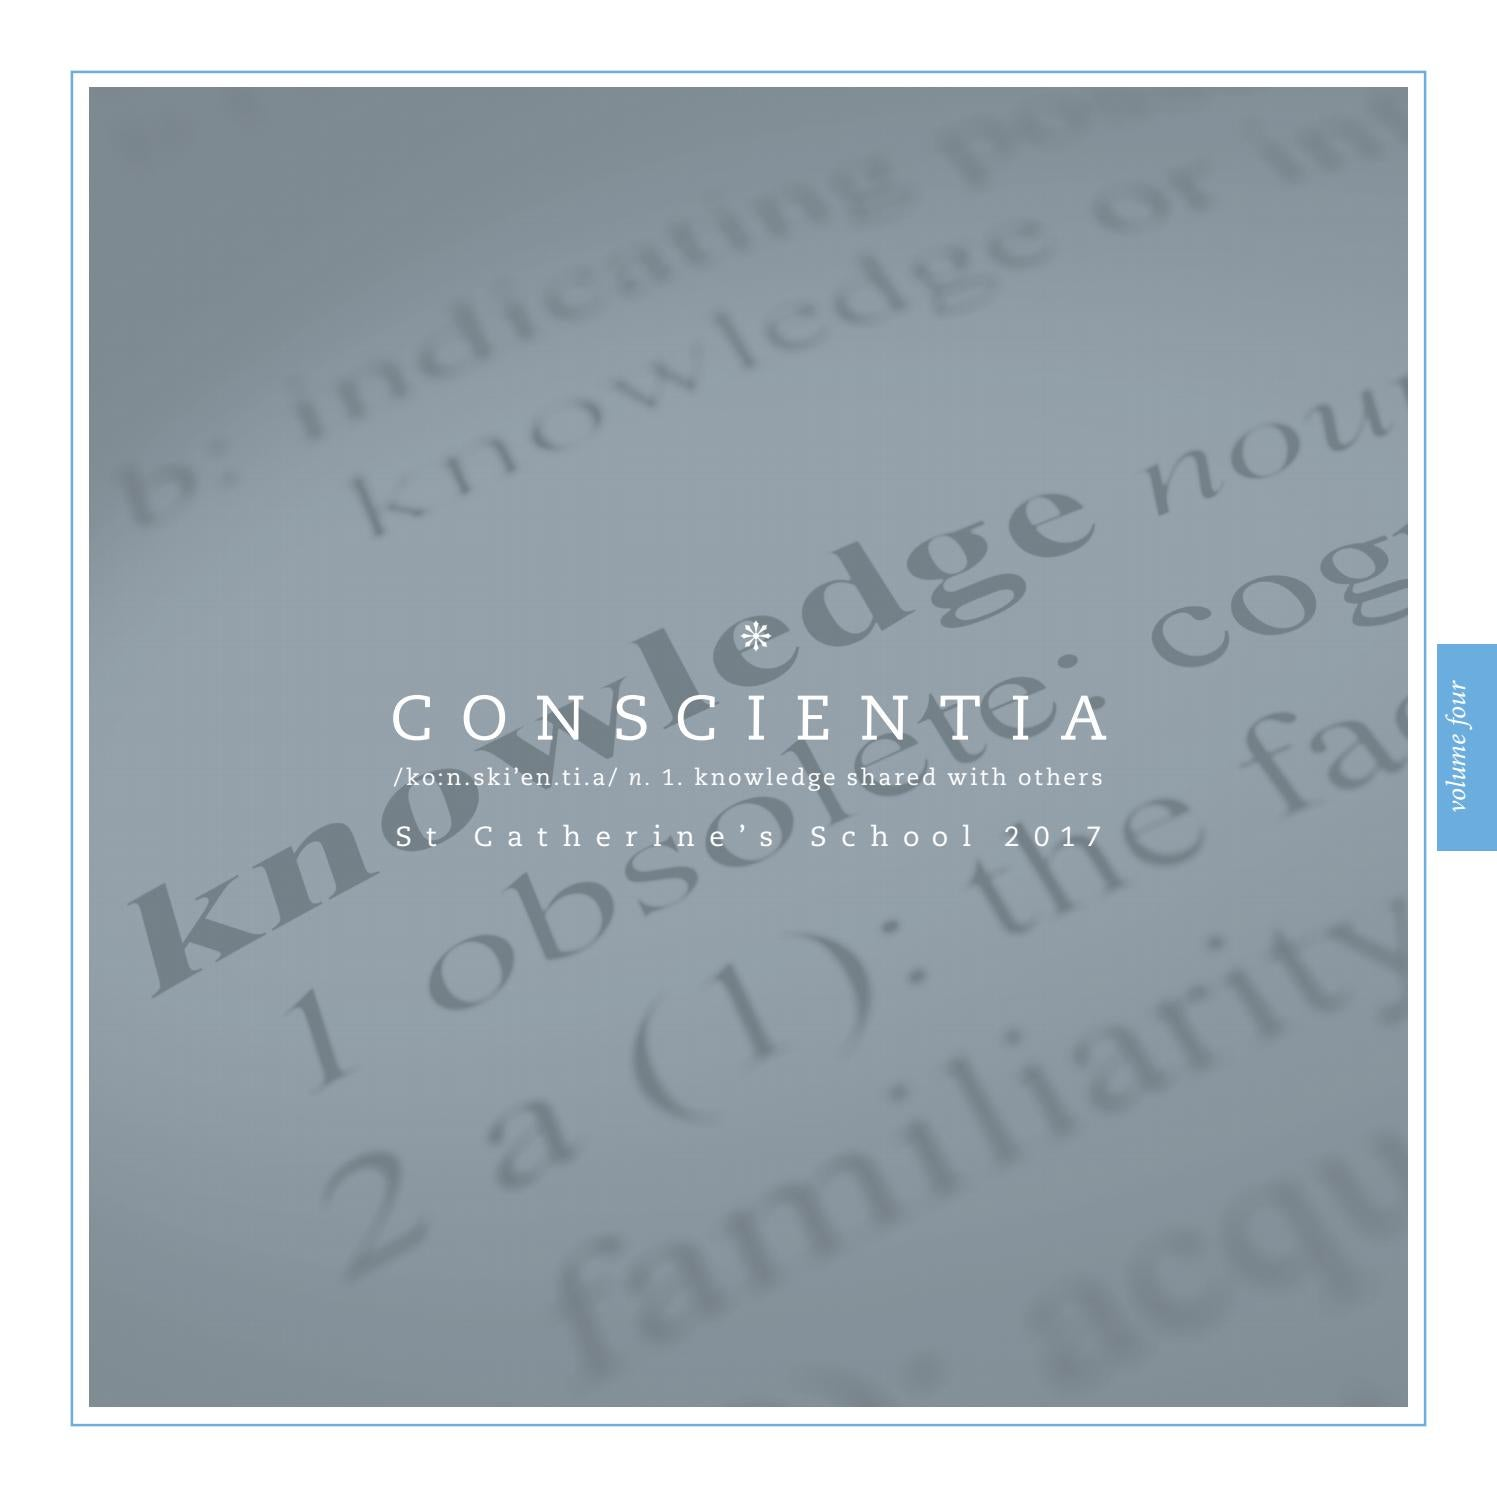 Conscientia volume 4 by St Catherine's School - issuu